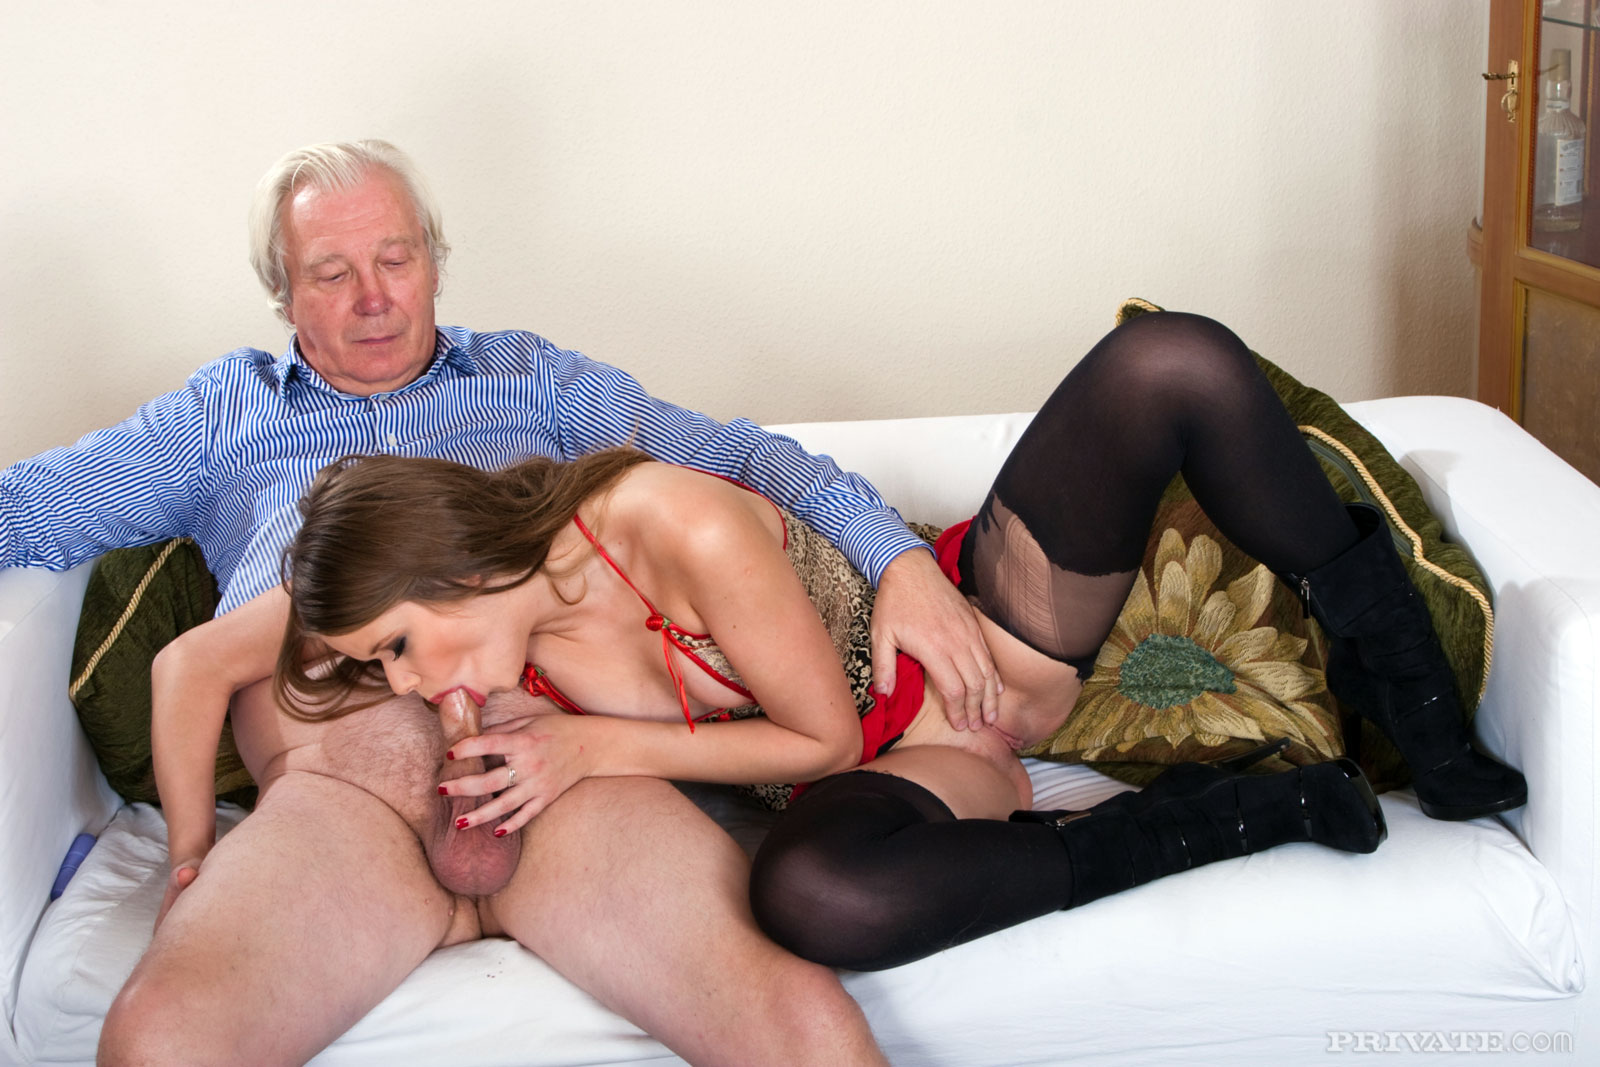 18 young sex movie and gay old men cum in 3